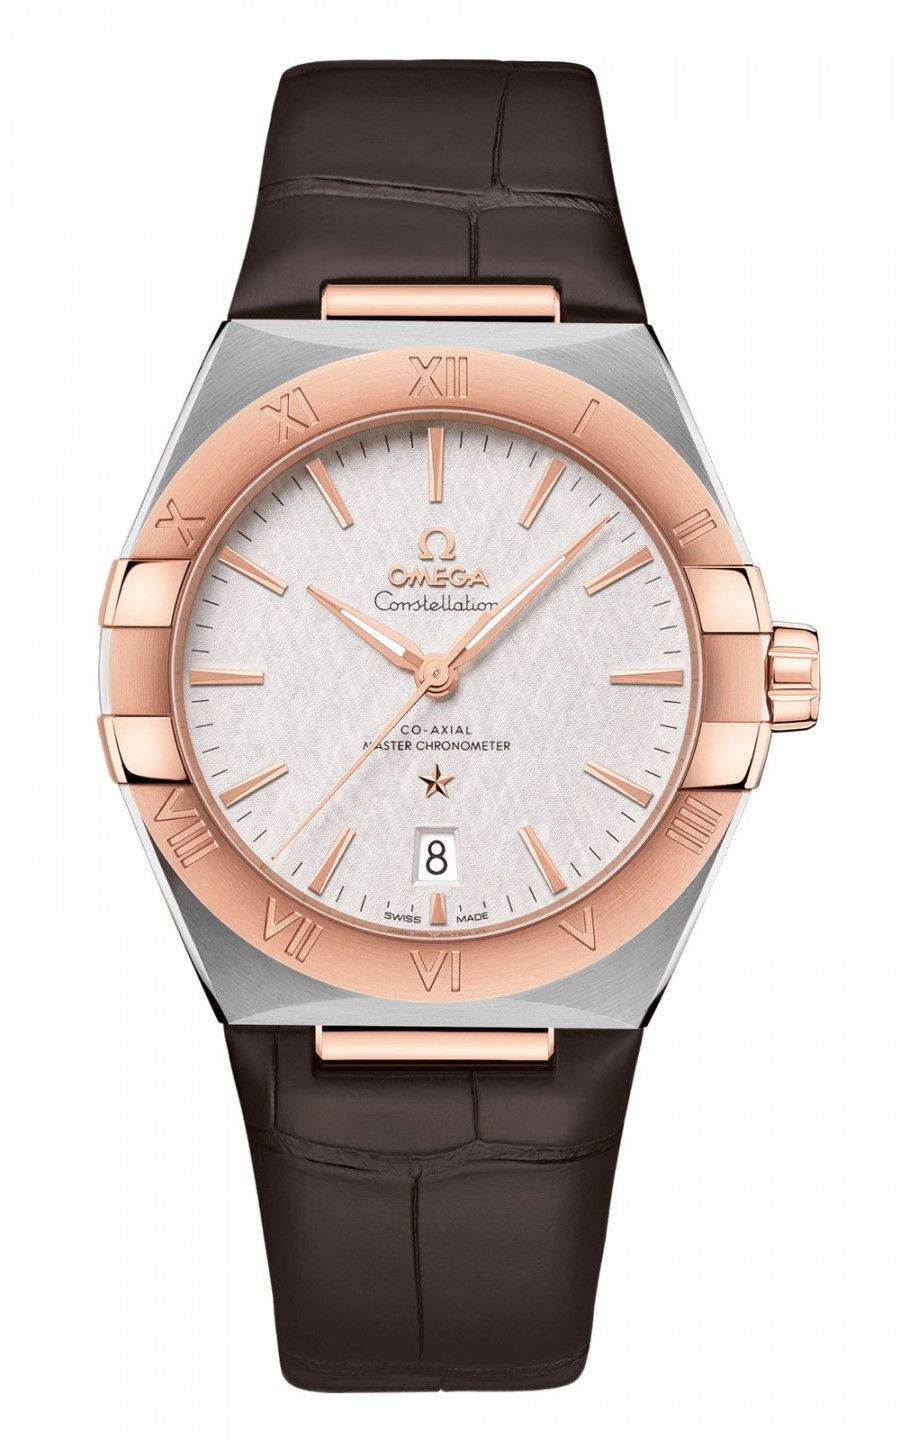 Hình Đồng hồ Omega Constellation Co‑Axial Master Chronometer, 39mm 131.23.39.20.02.001